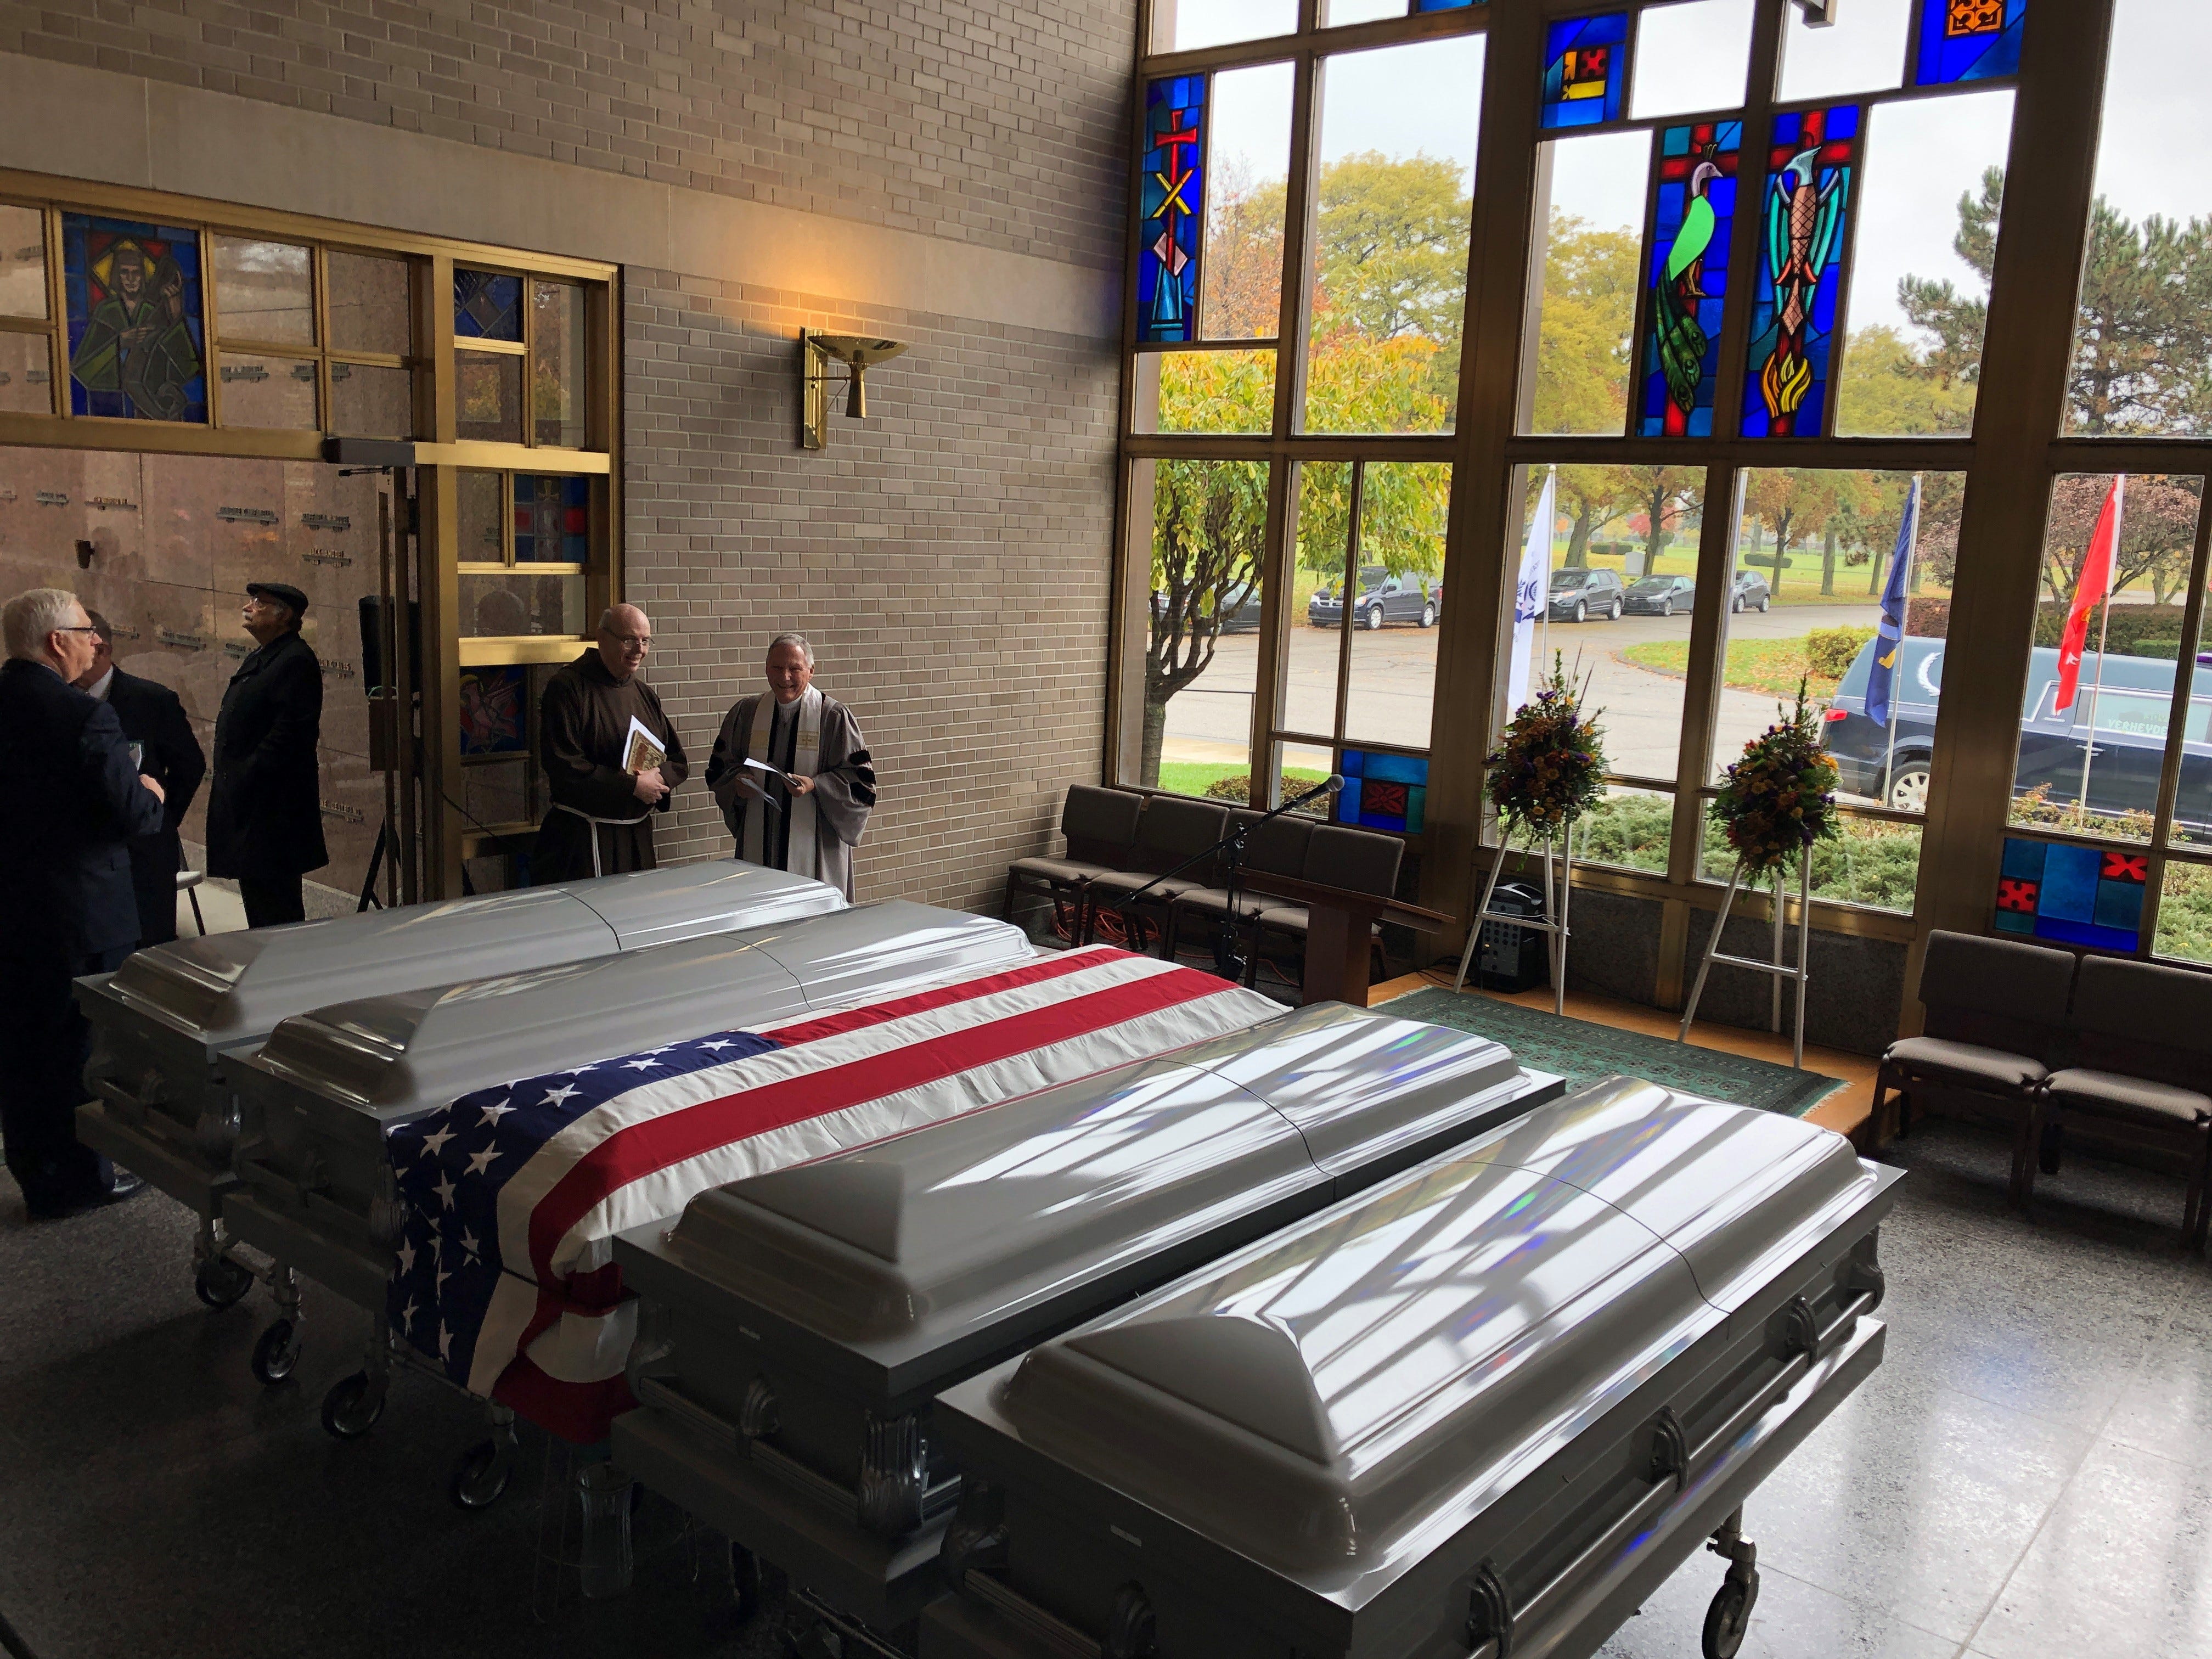 Live: Service for veterans' remains found at Cantrell Funeral Home